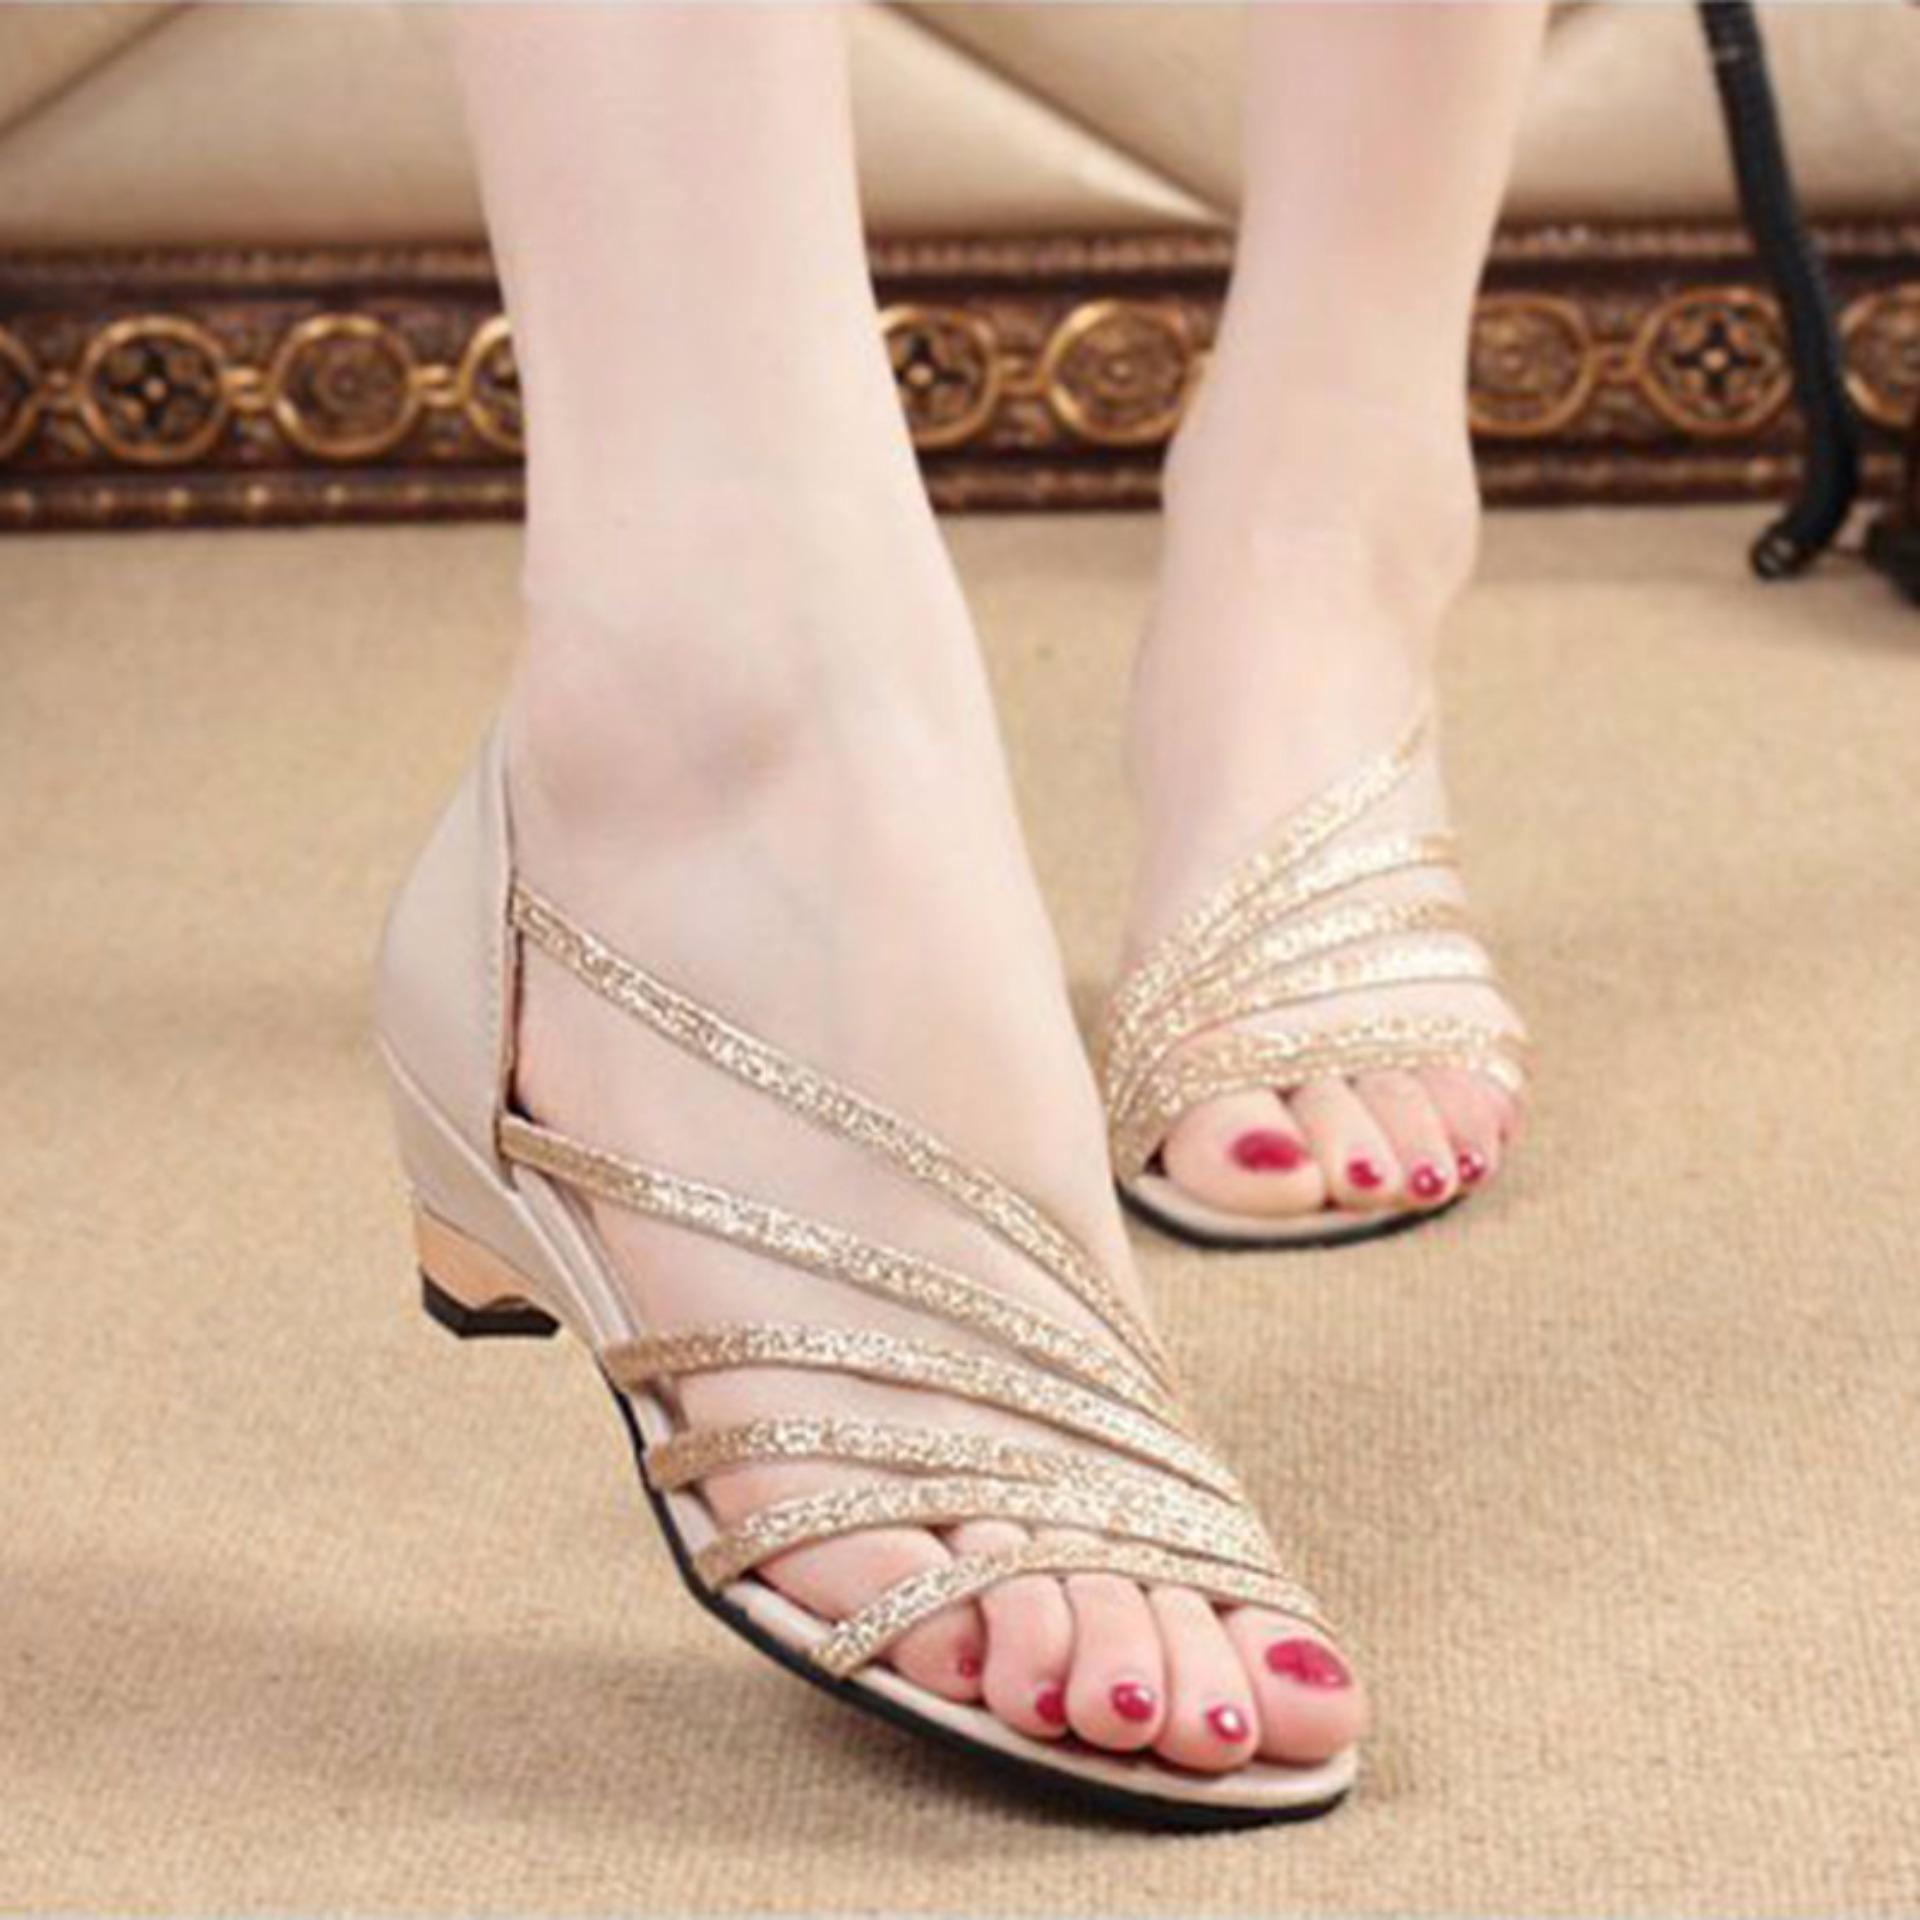 ... New Women's Rome Style Sandals Bling Low Heel Shoes Sandals Female(Gold) - intl ...